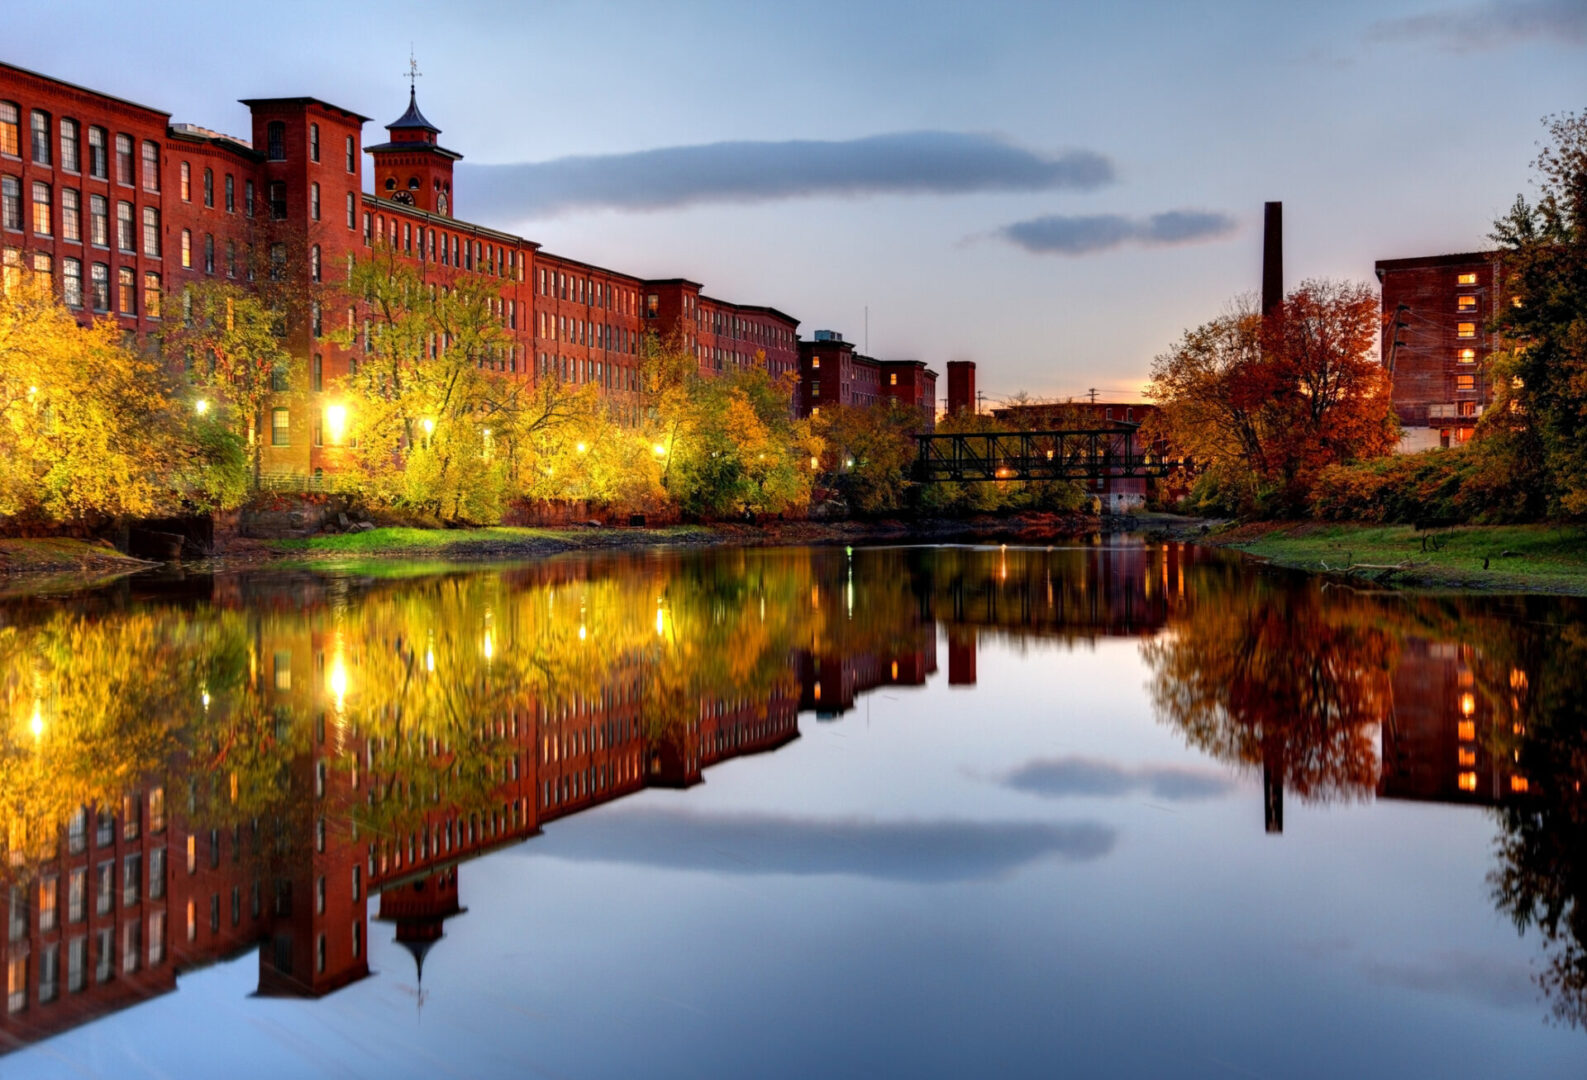 Nashua, New Hamshire industrial Mills refection along the banks of the Nashua River on a calm night. Nashua is the second largest city in the state of New Hampshire. Nashua is known for its  livability and economic expansion as part of the Boston region